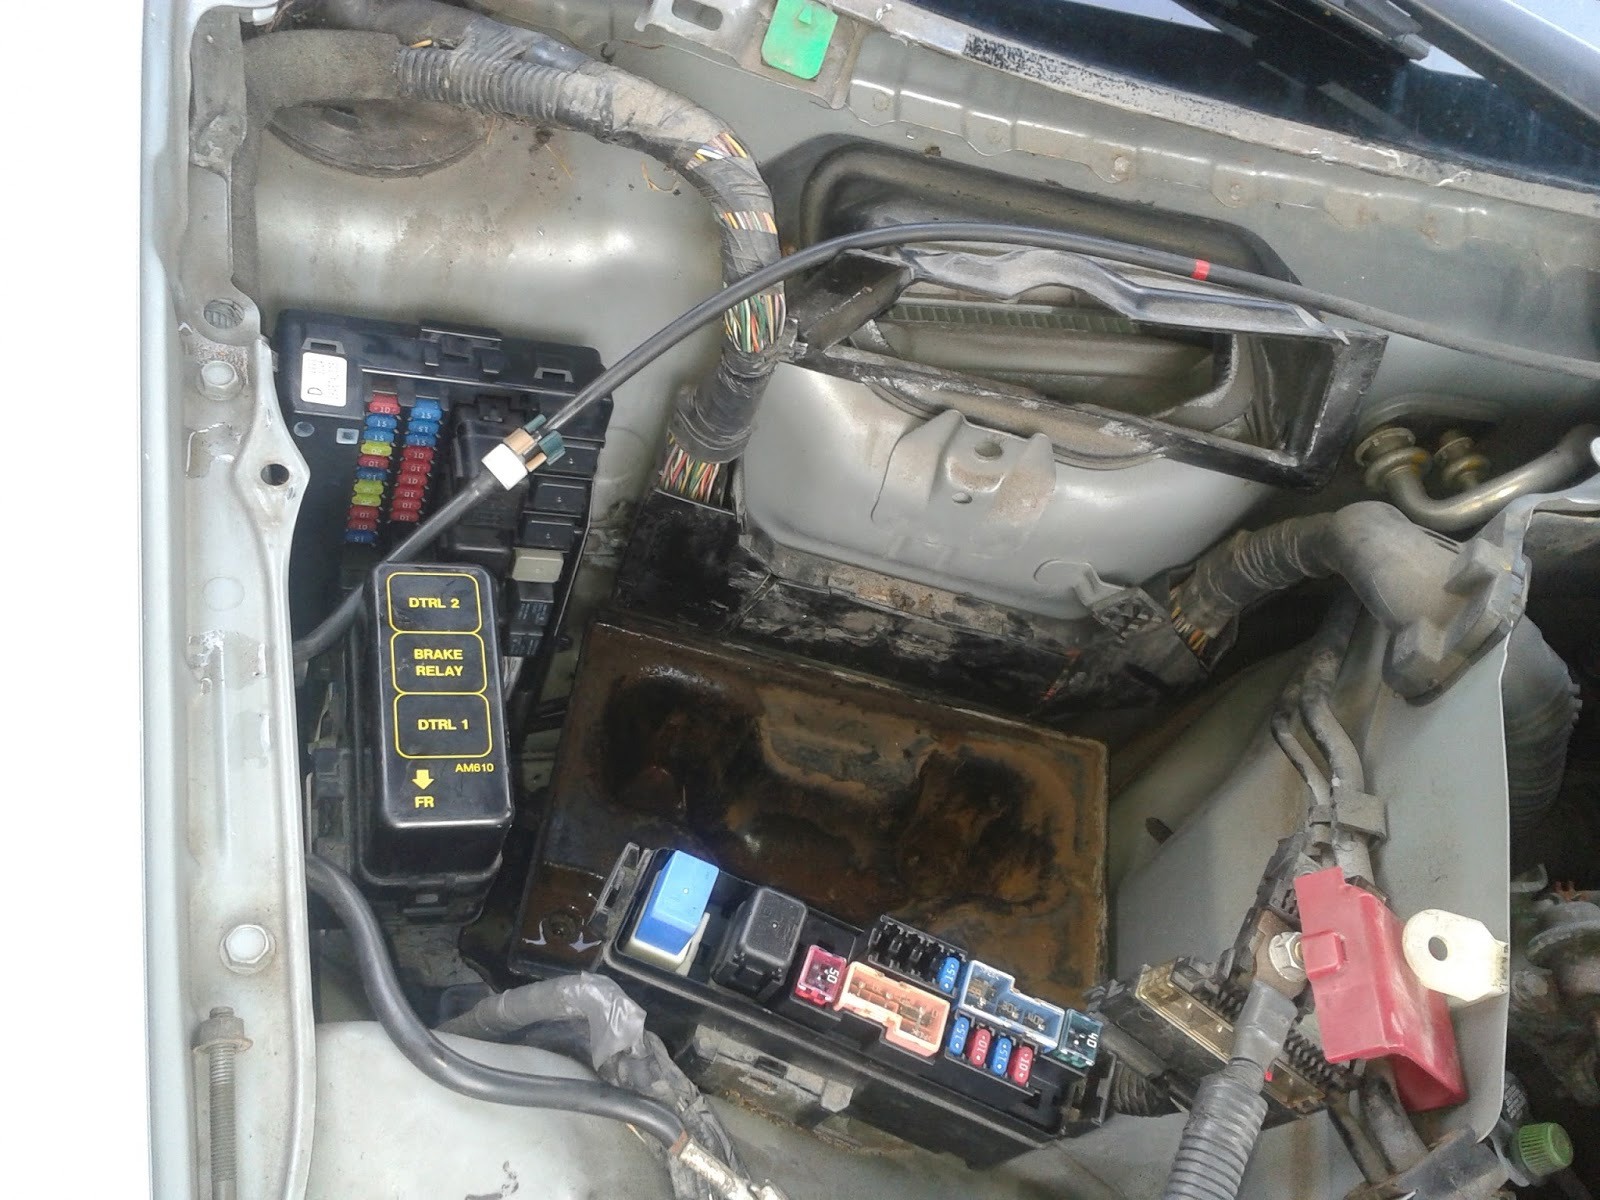 2015 05 27%2B18.55.50 zf inifiniti g35 2003 wet ipdm issue, how to fix it 2006 infiniti g35 coupe fuse box diagram at soozxer.org